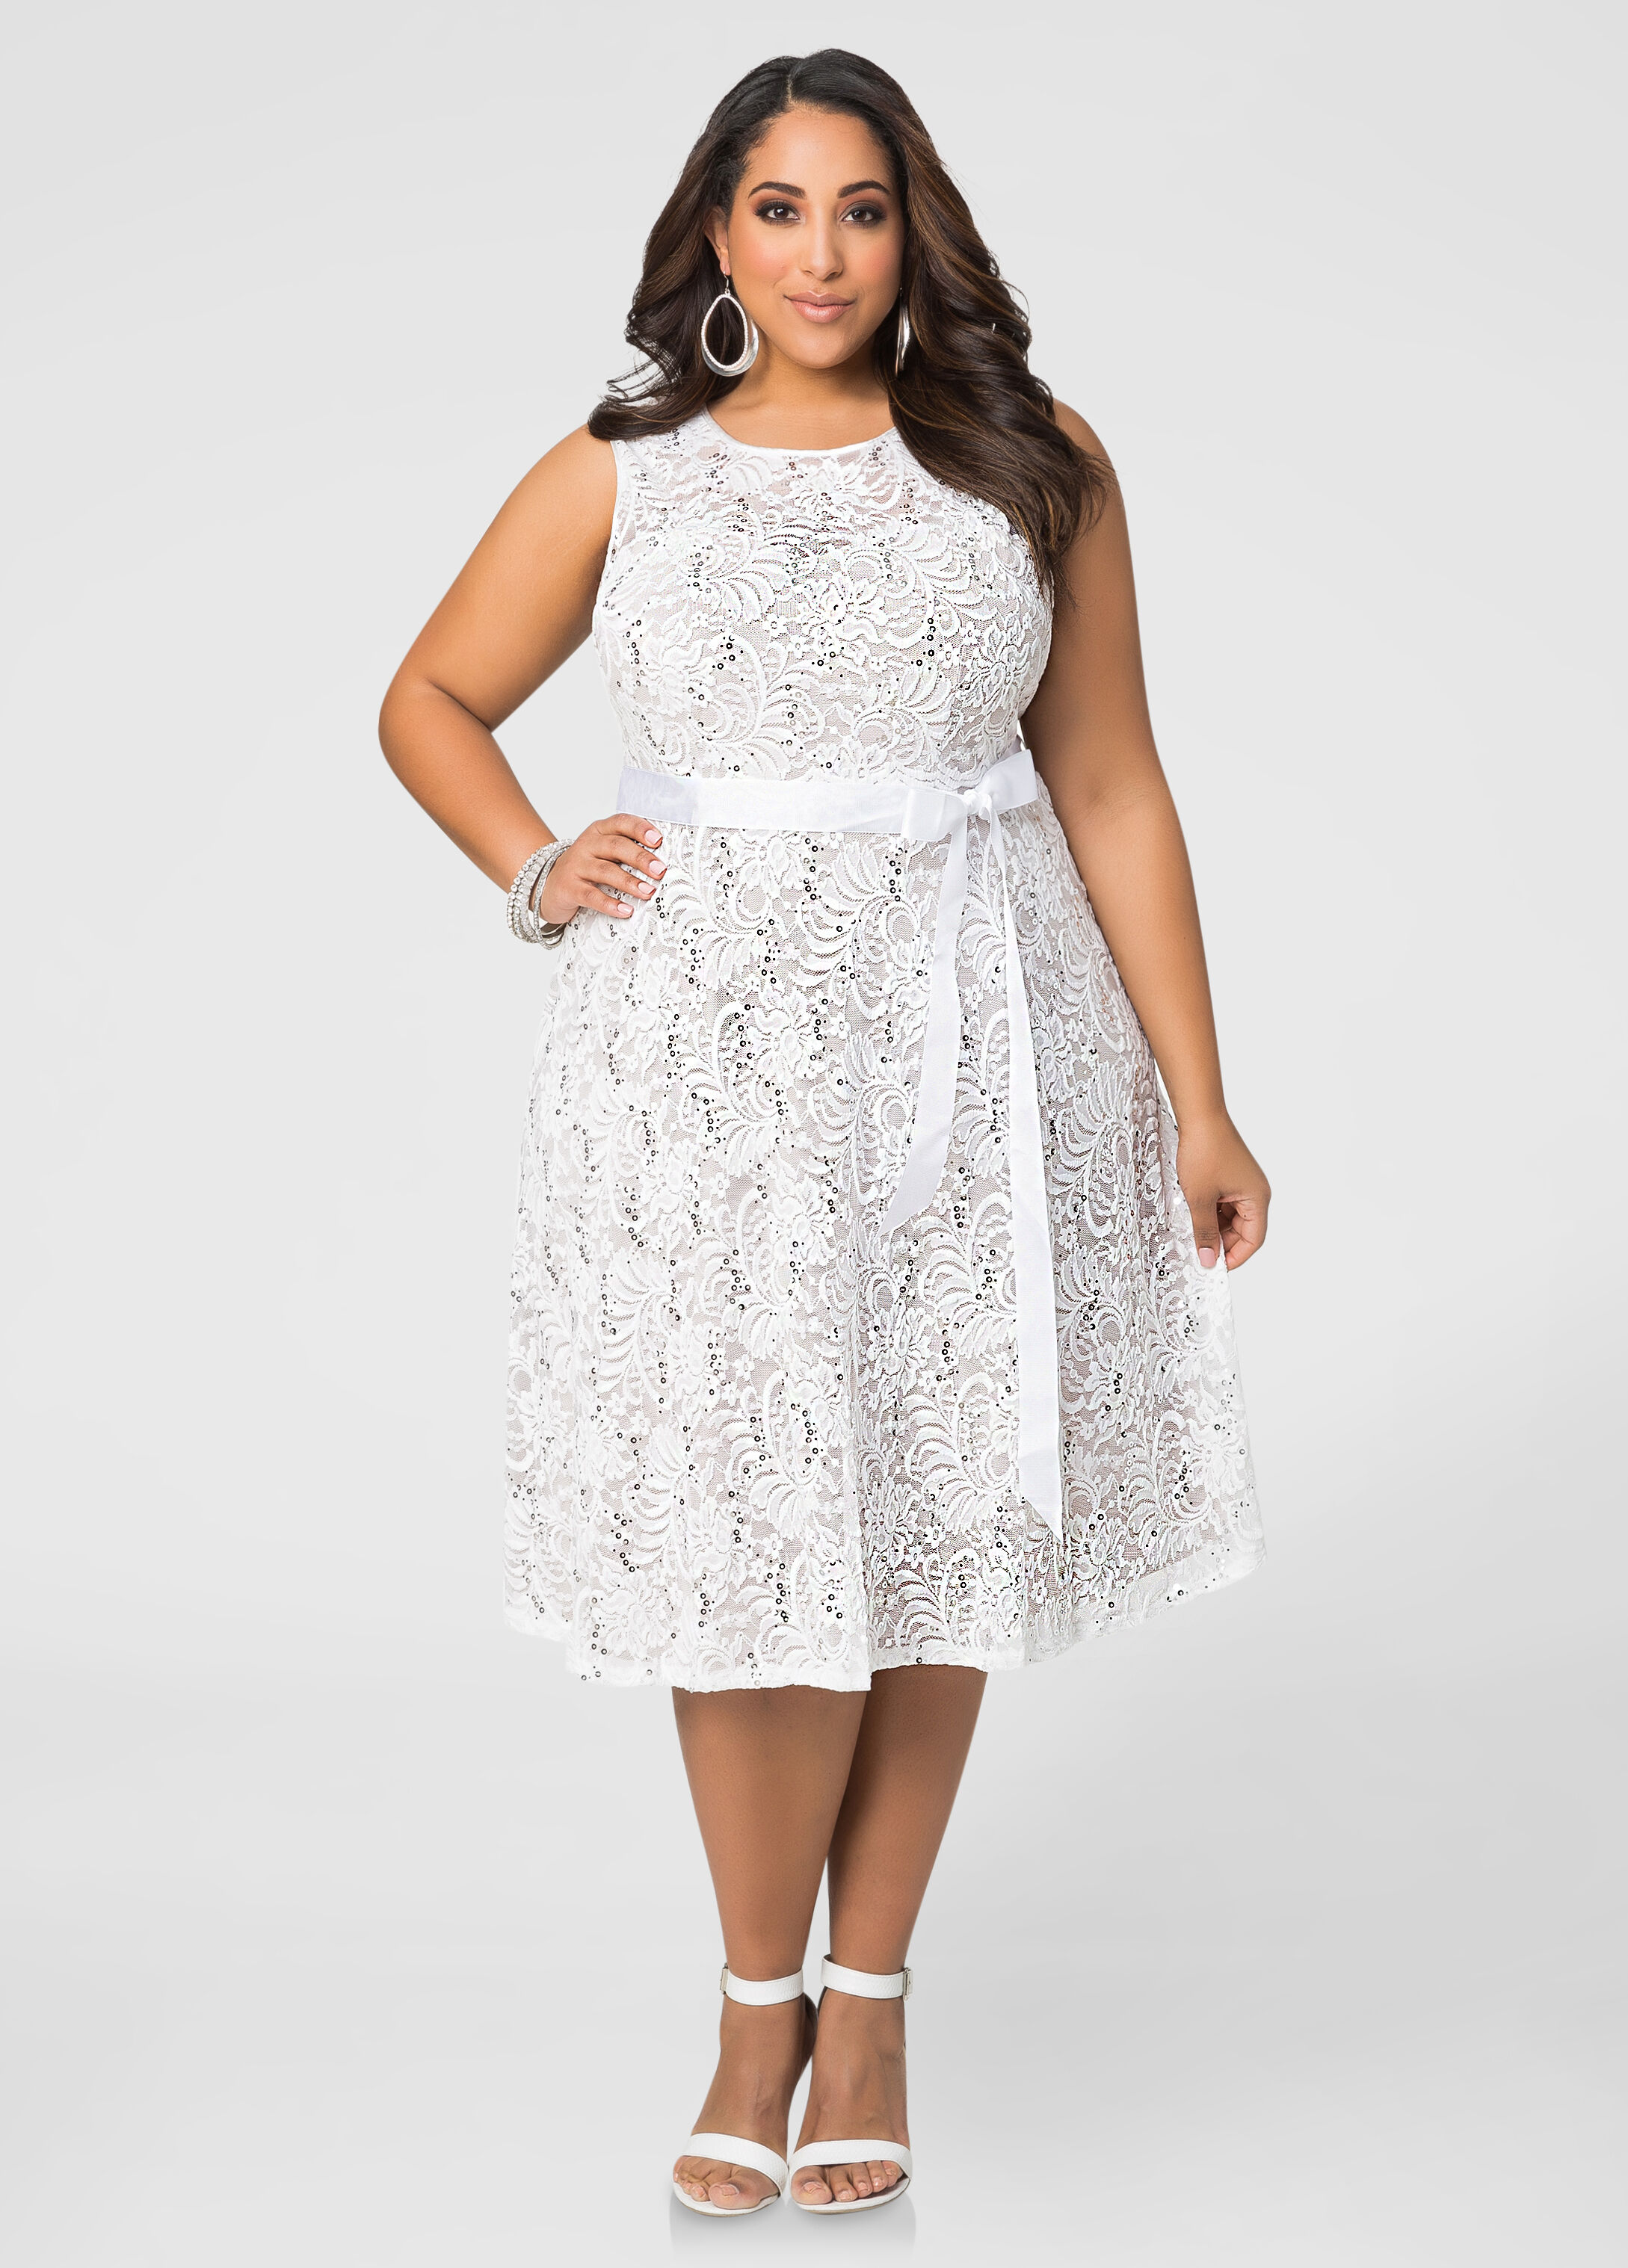 occasion wear dresses